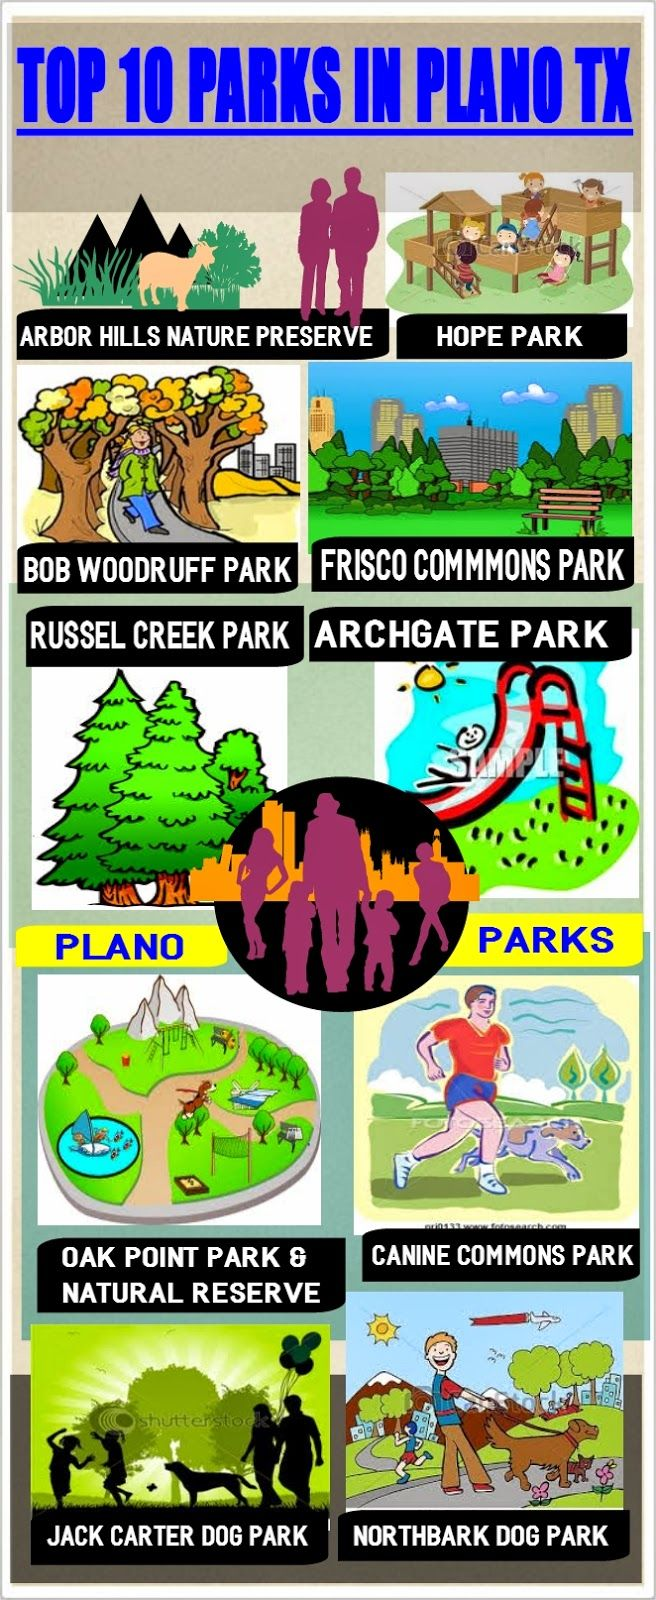 Top 10 Parks in Plano Texas